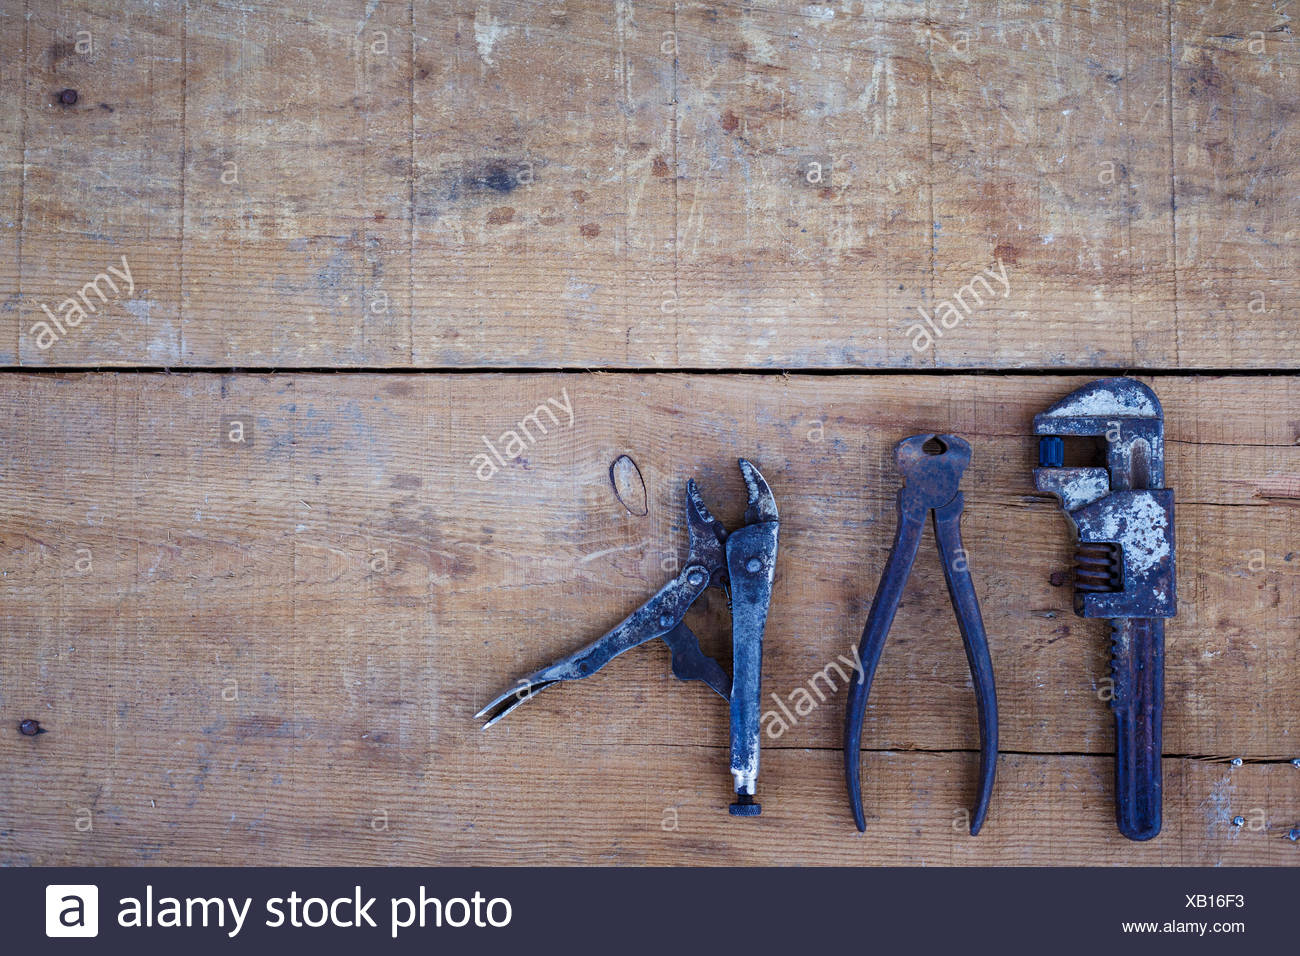 High Angle View Of Rusty Tools On Wooden Table - Stock Image